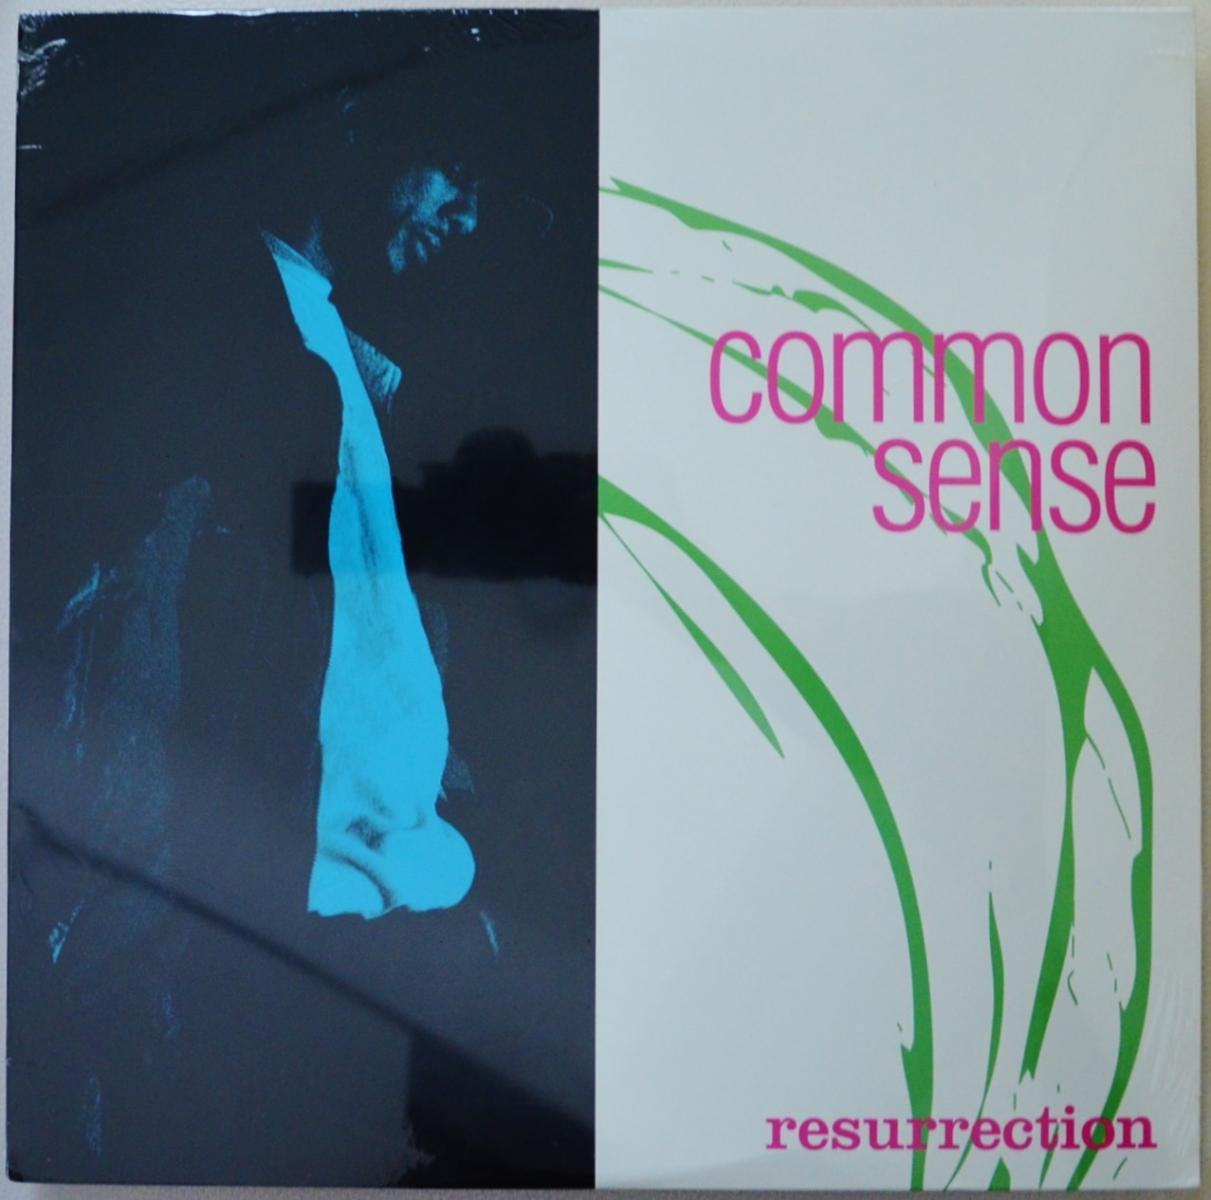 COMMON SENSE / RESURRECTION (1LP)